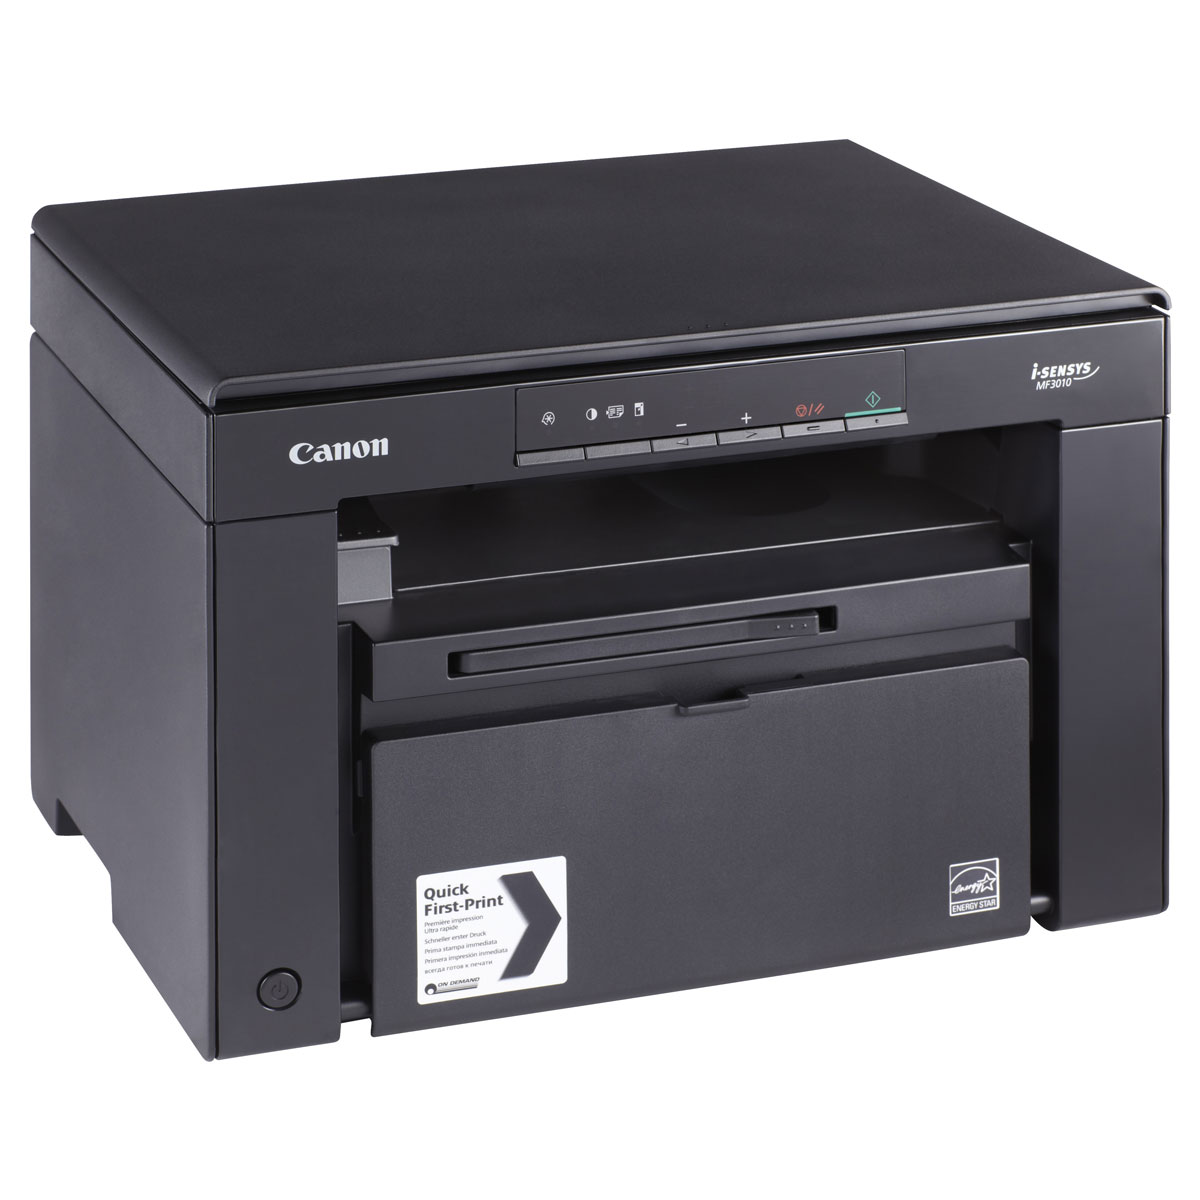 canon i sensys mf3010 imprimante laser multifonctions comparer avec. Black Bedroom Furniture Sets. Home Design Ideas